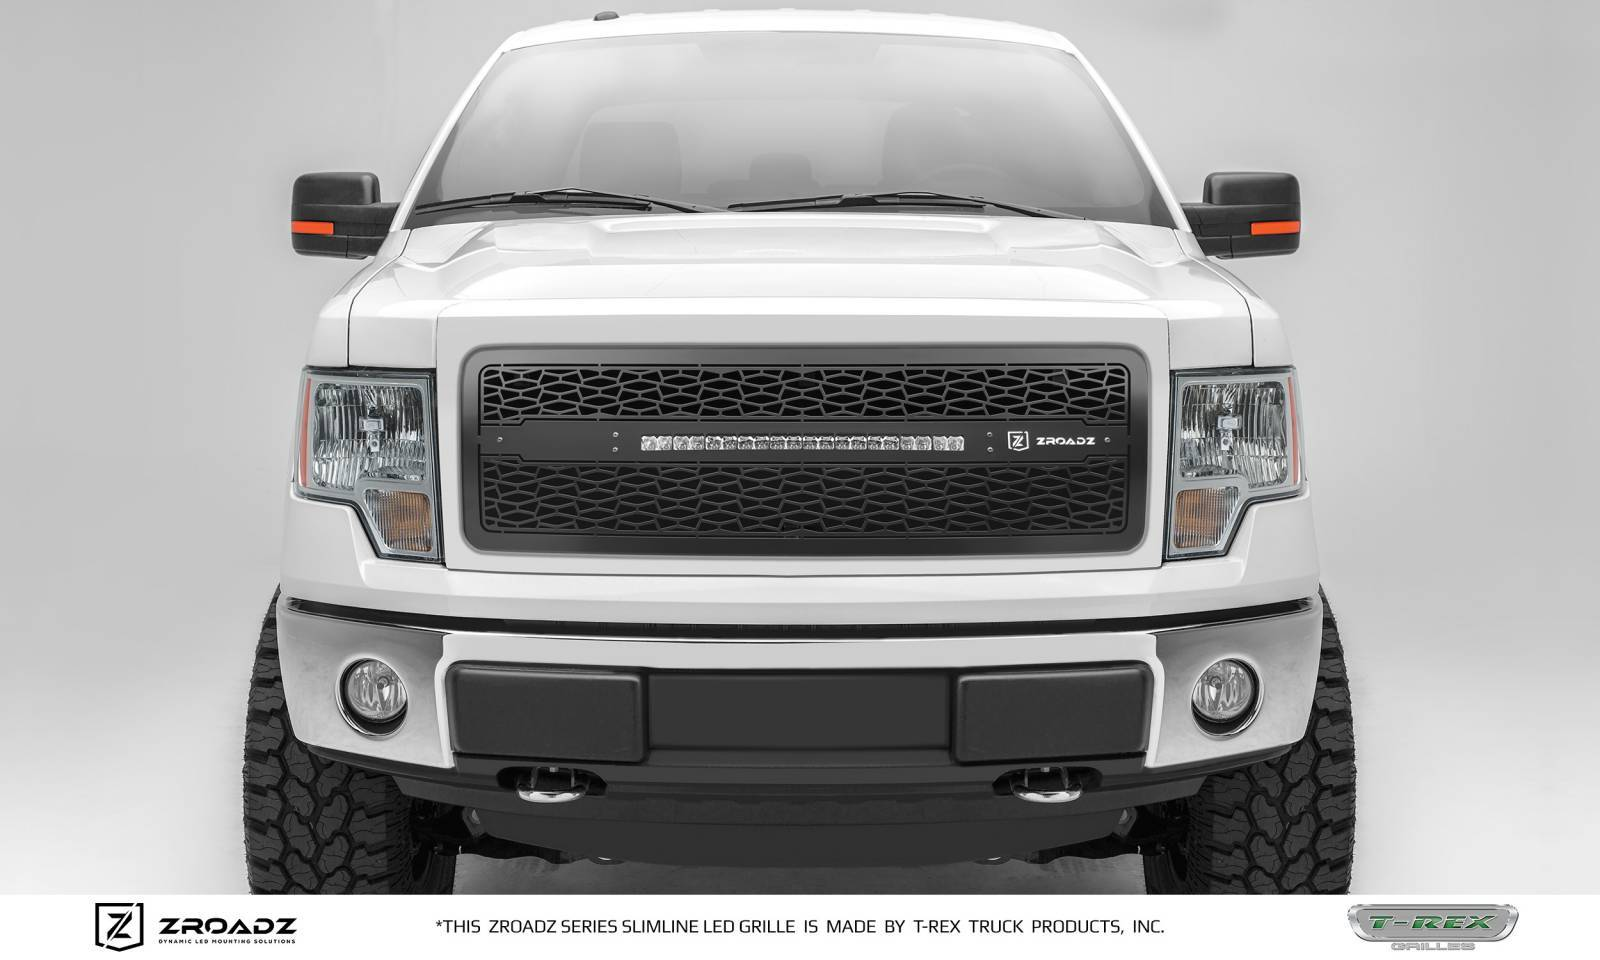 T-REX Grilles - Ford F150 - ZROADZ Series - Main Insert - Grille w/ One 20 Inch Slim Line Single Row LED Light Bar - Includes Universal Wiring Harness - Part# Z315721